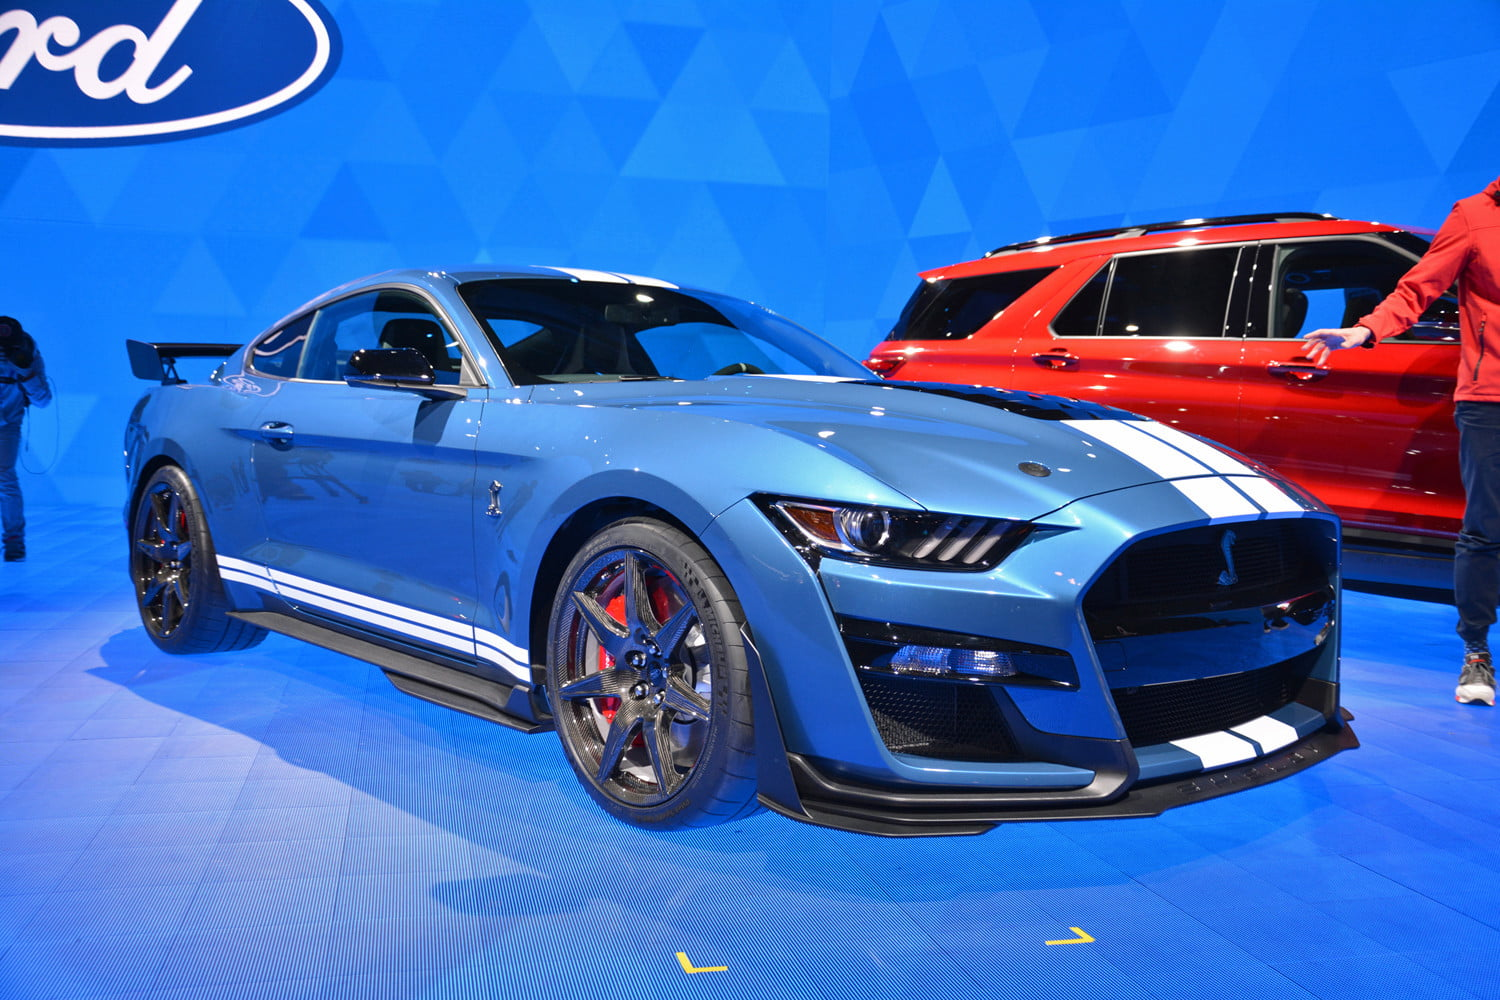 68 The Best 2020 Ford Mustang Shelby Gt 350 Performance and New Engine